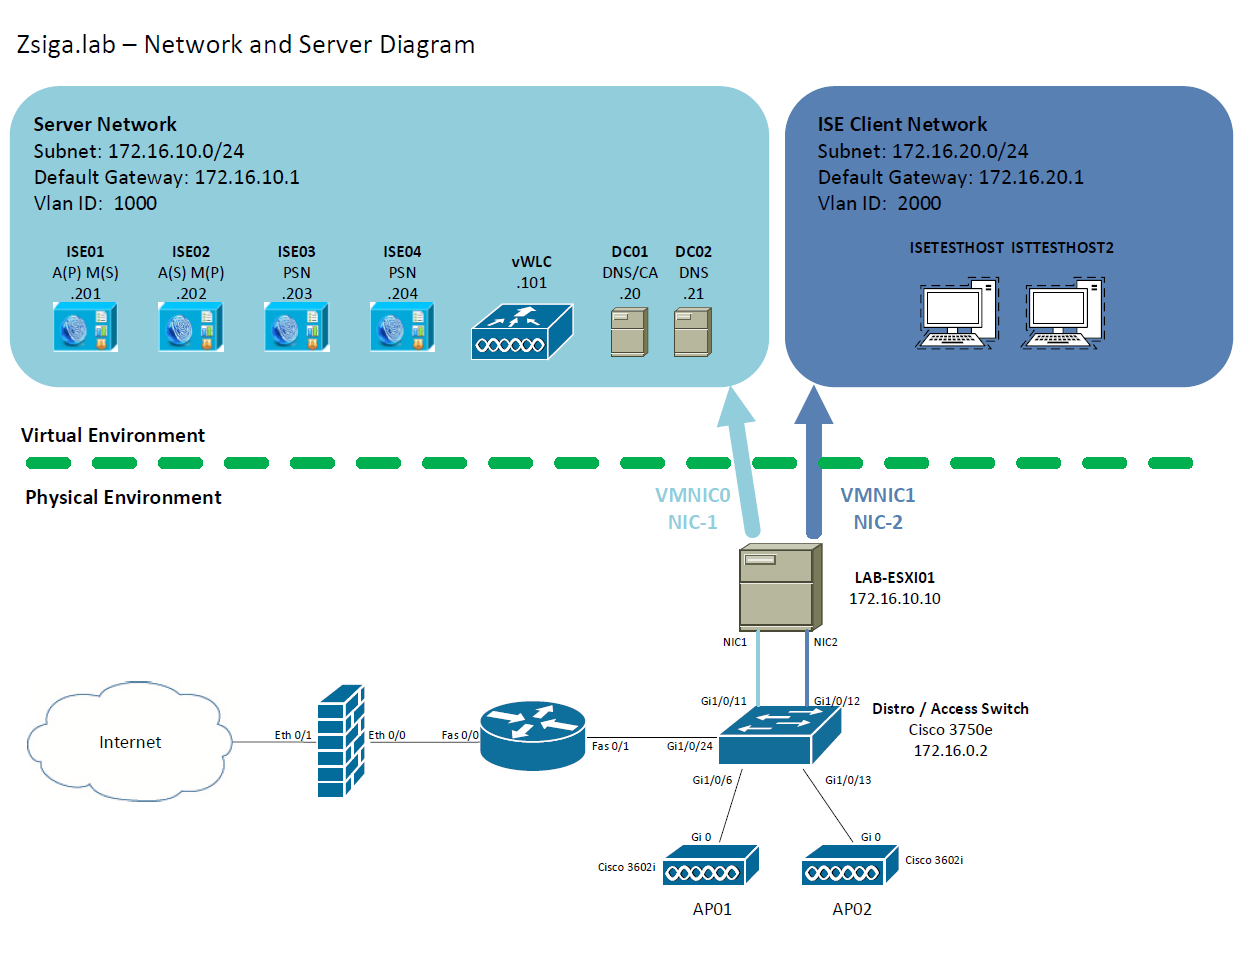 Zbise09 Cisco Ise 23 8021x Auth Peap Wired Use Cases Zigbits Network Diagram For A Separate Vswitch That Has Dedicated Nic Connected To Our 3750e Switch On Port Gi1 0 12 You Can Reference The Lab Below If Needed